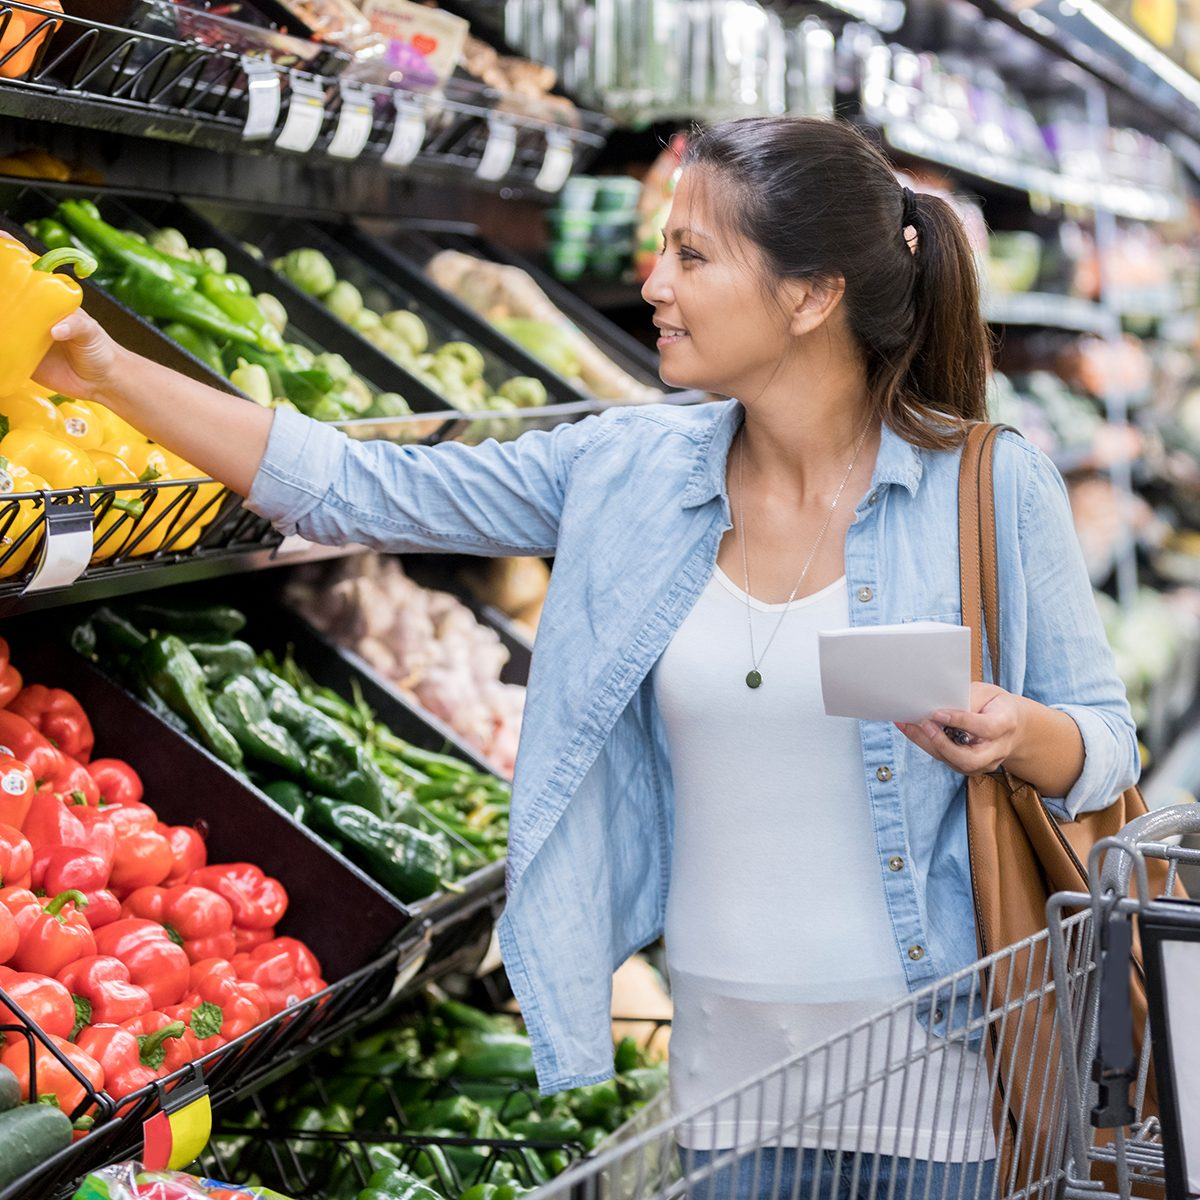 A smiling mid adult woman holds a grocery list as she shops for produce. She reaches to pick up a yellow pepper.